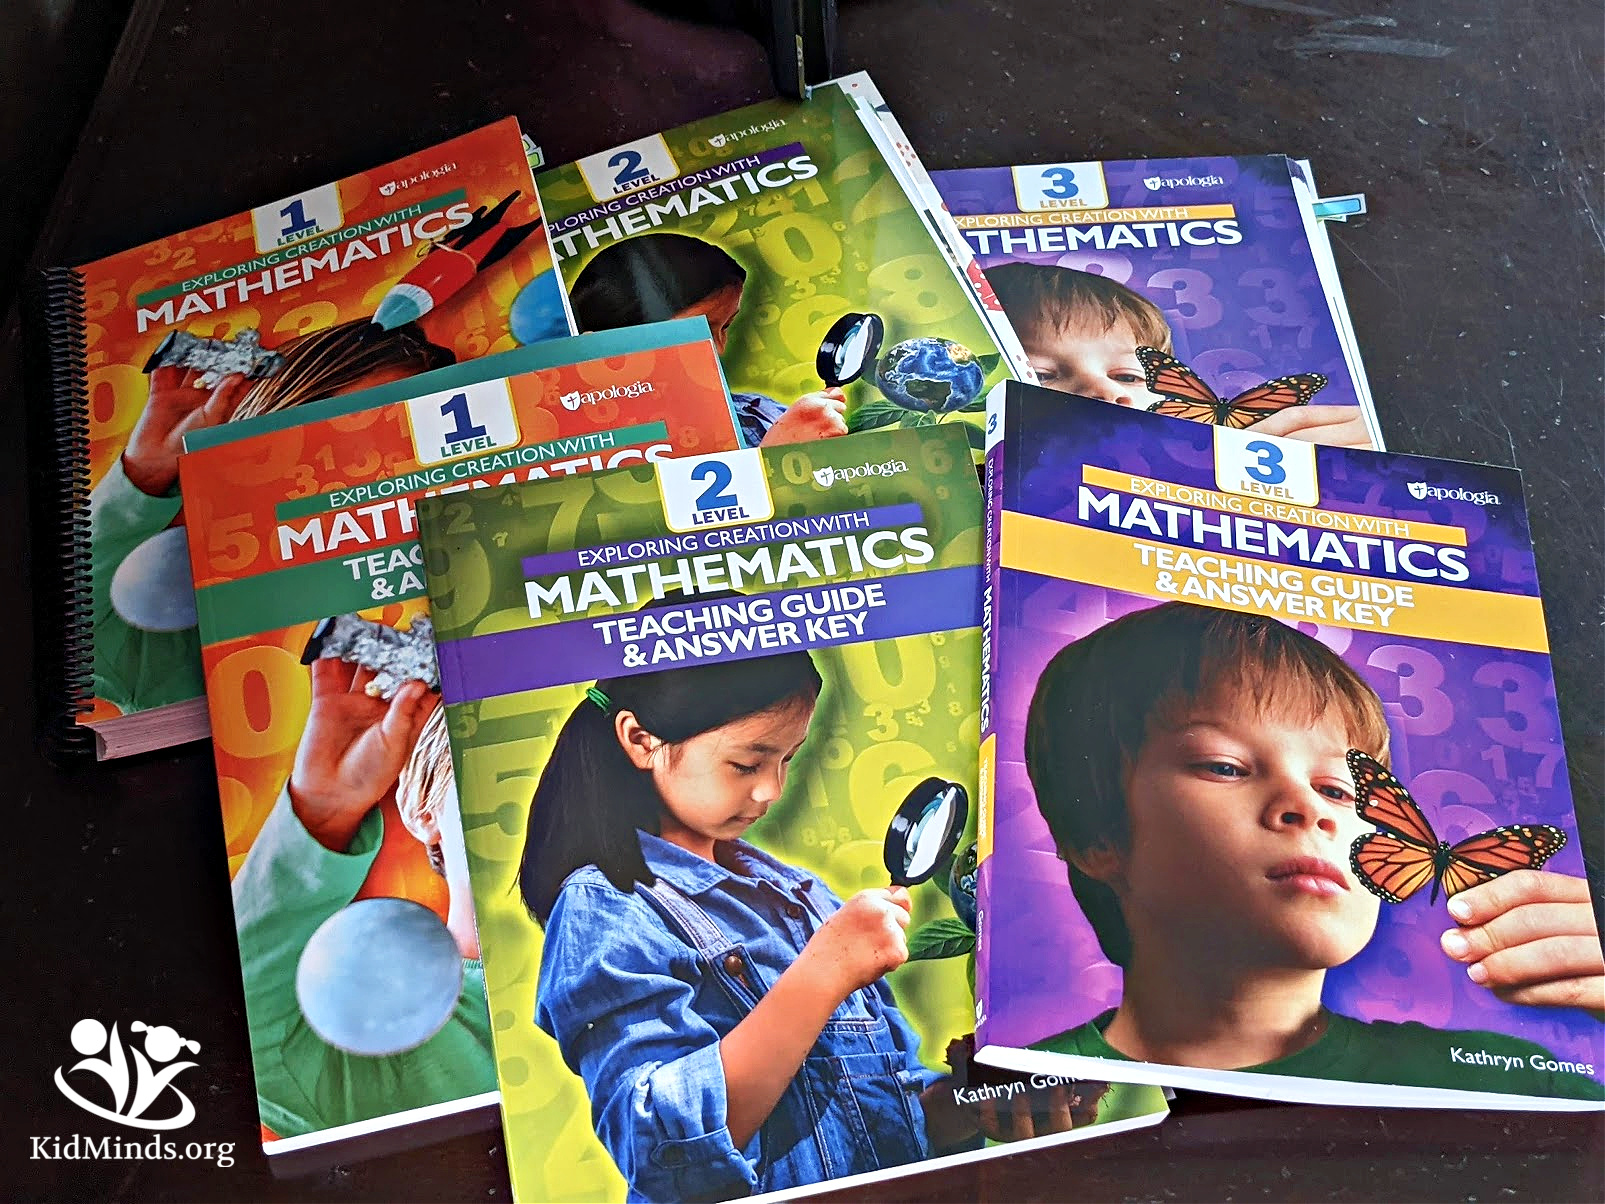 What would it be like to have fun teaching math at home? We tried the Apologia Math Curriculum for elementary grades and give it an enthusiastic thumbs up! #homeschooling #mathcurriculum